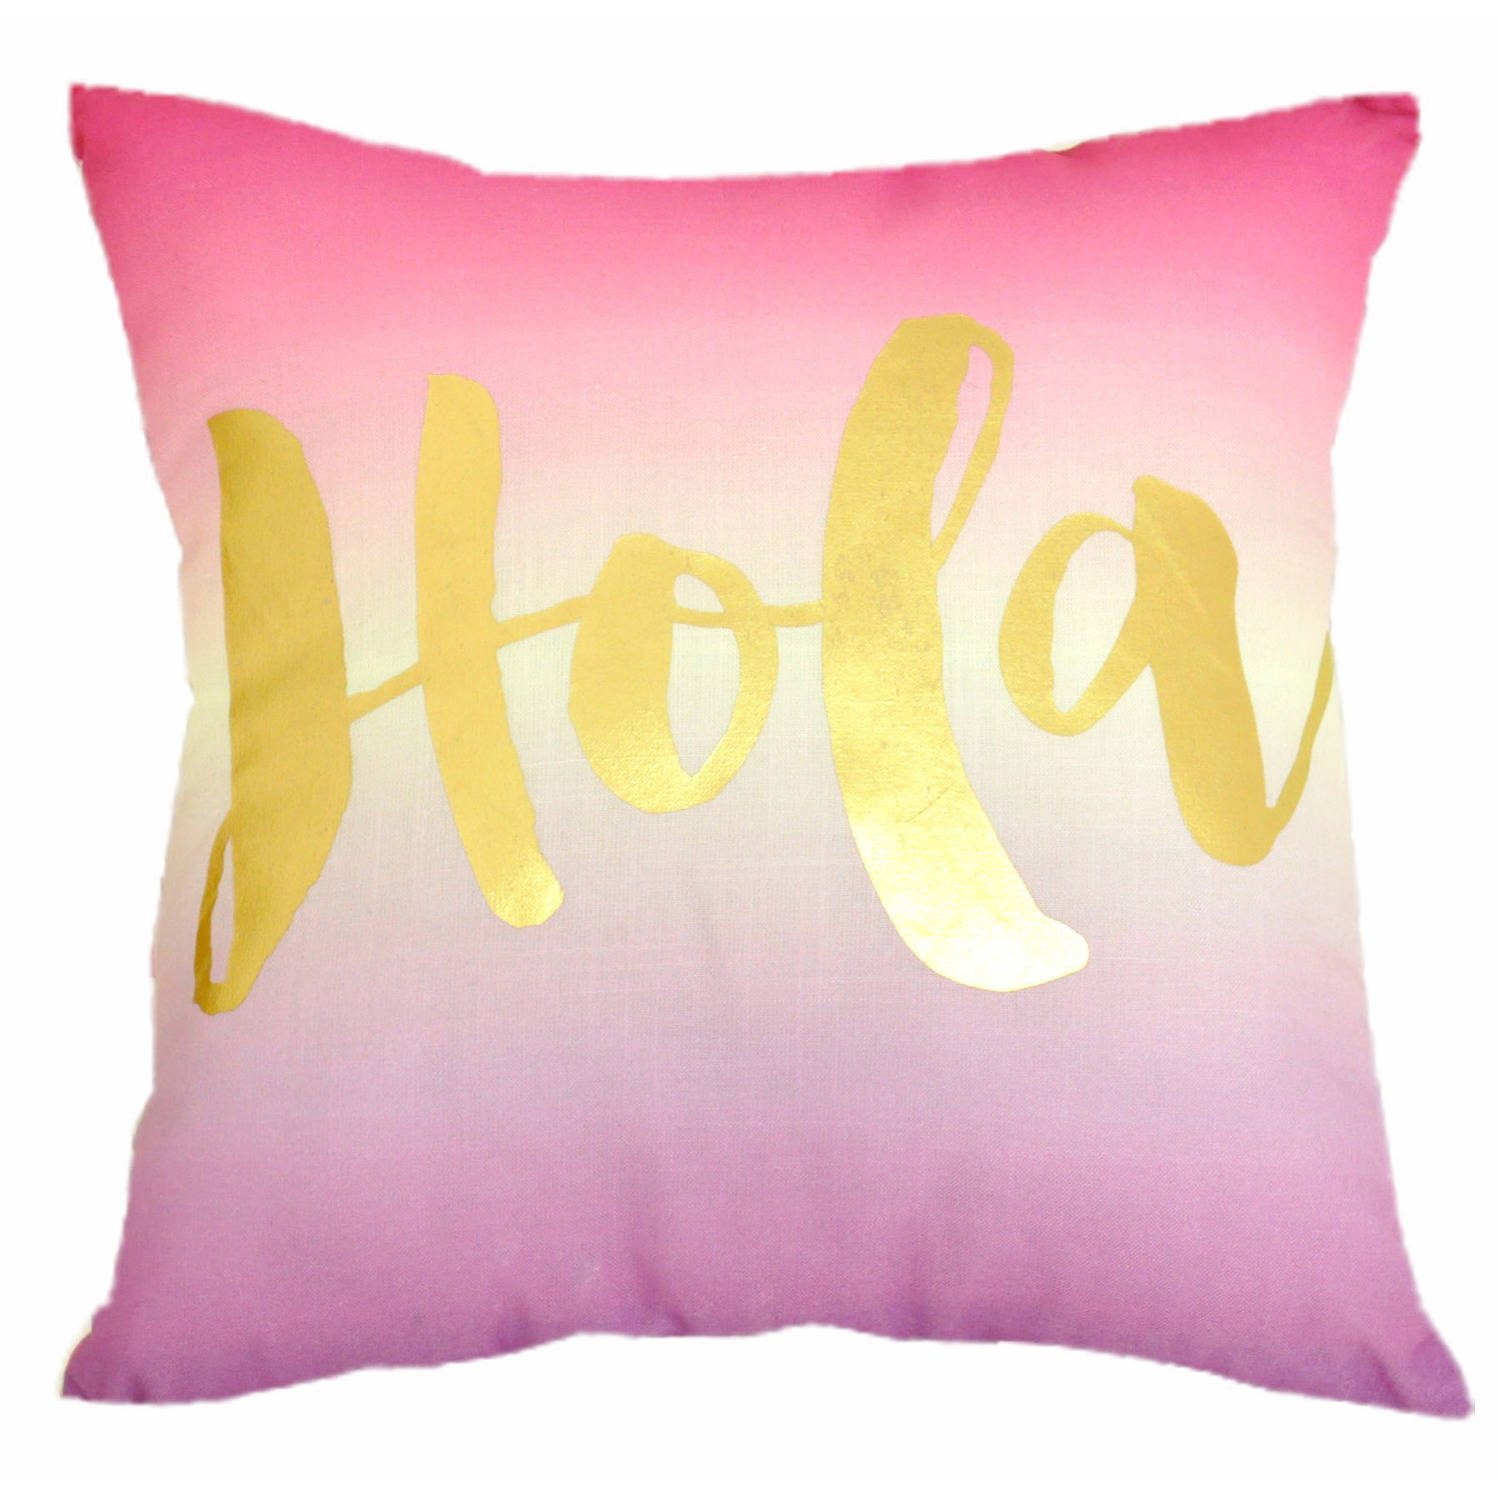 Formula Hola Motif Reversible Print Decorative Pillow, Pink and White